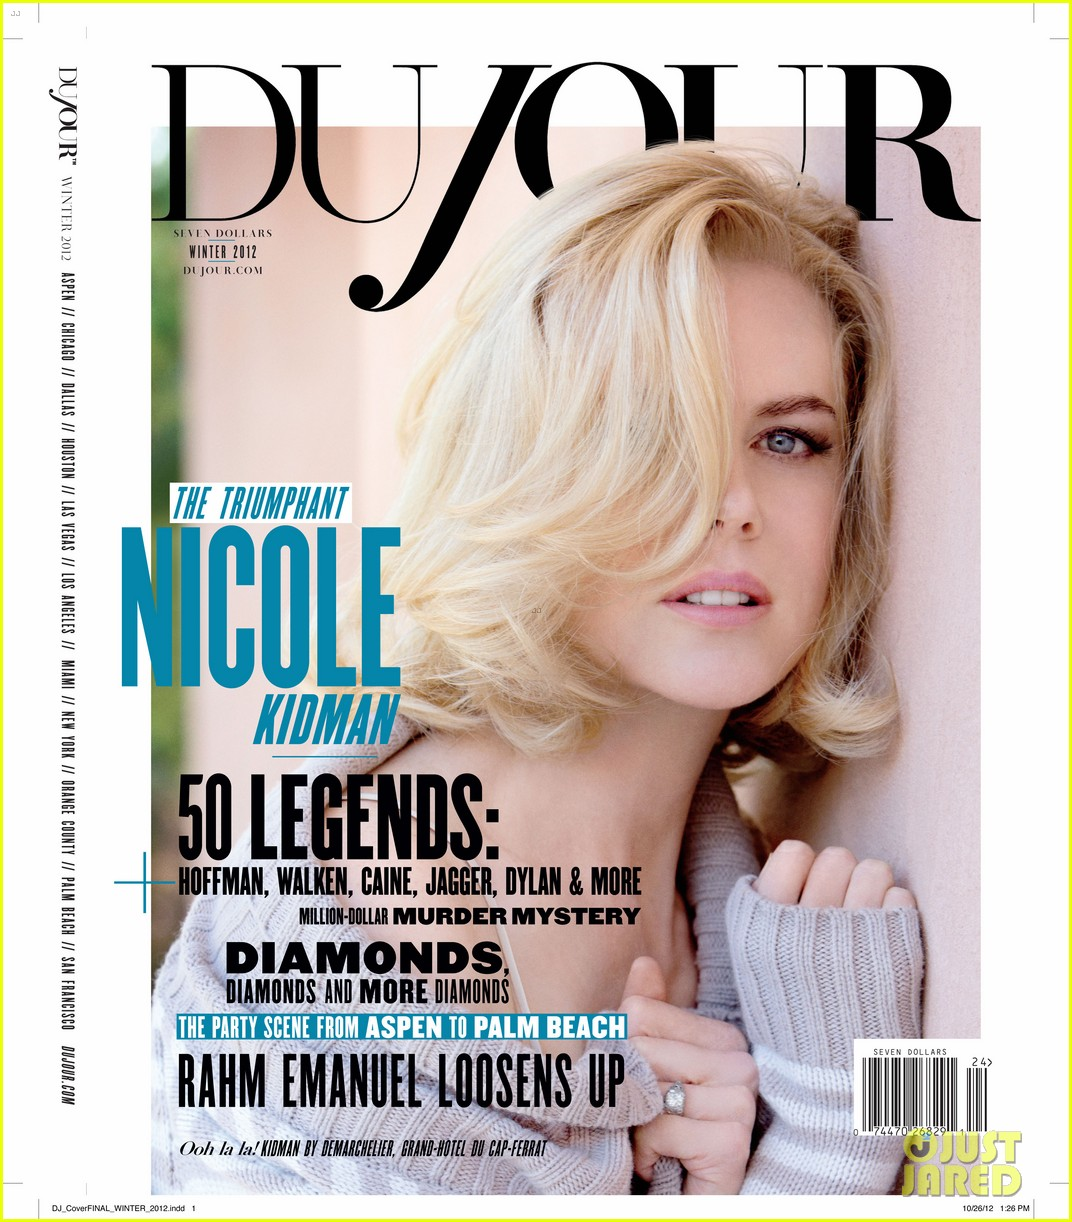 nicole kidman covers dujour magazine winter 2012